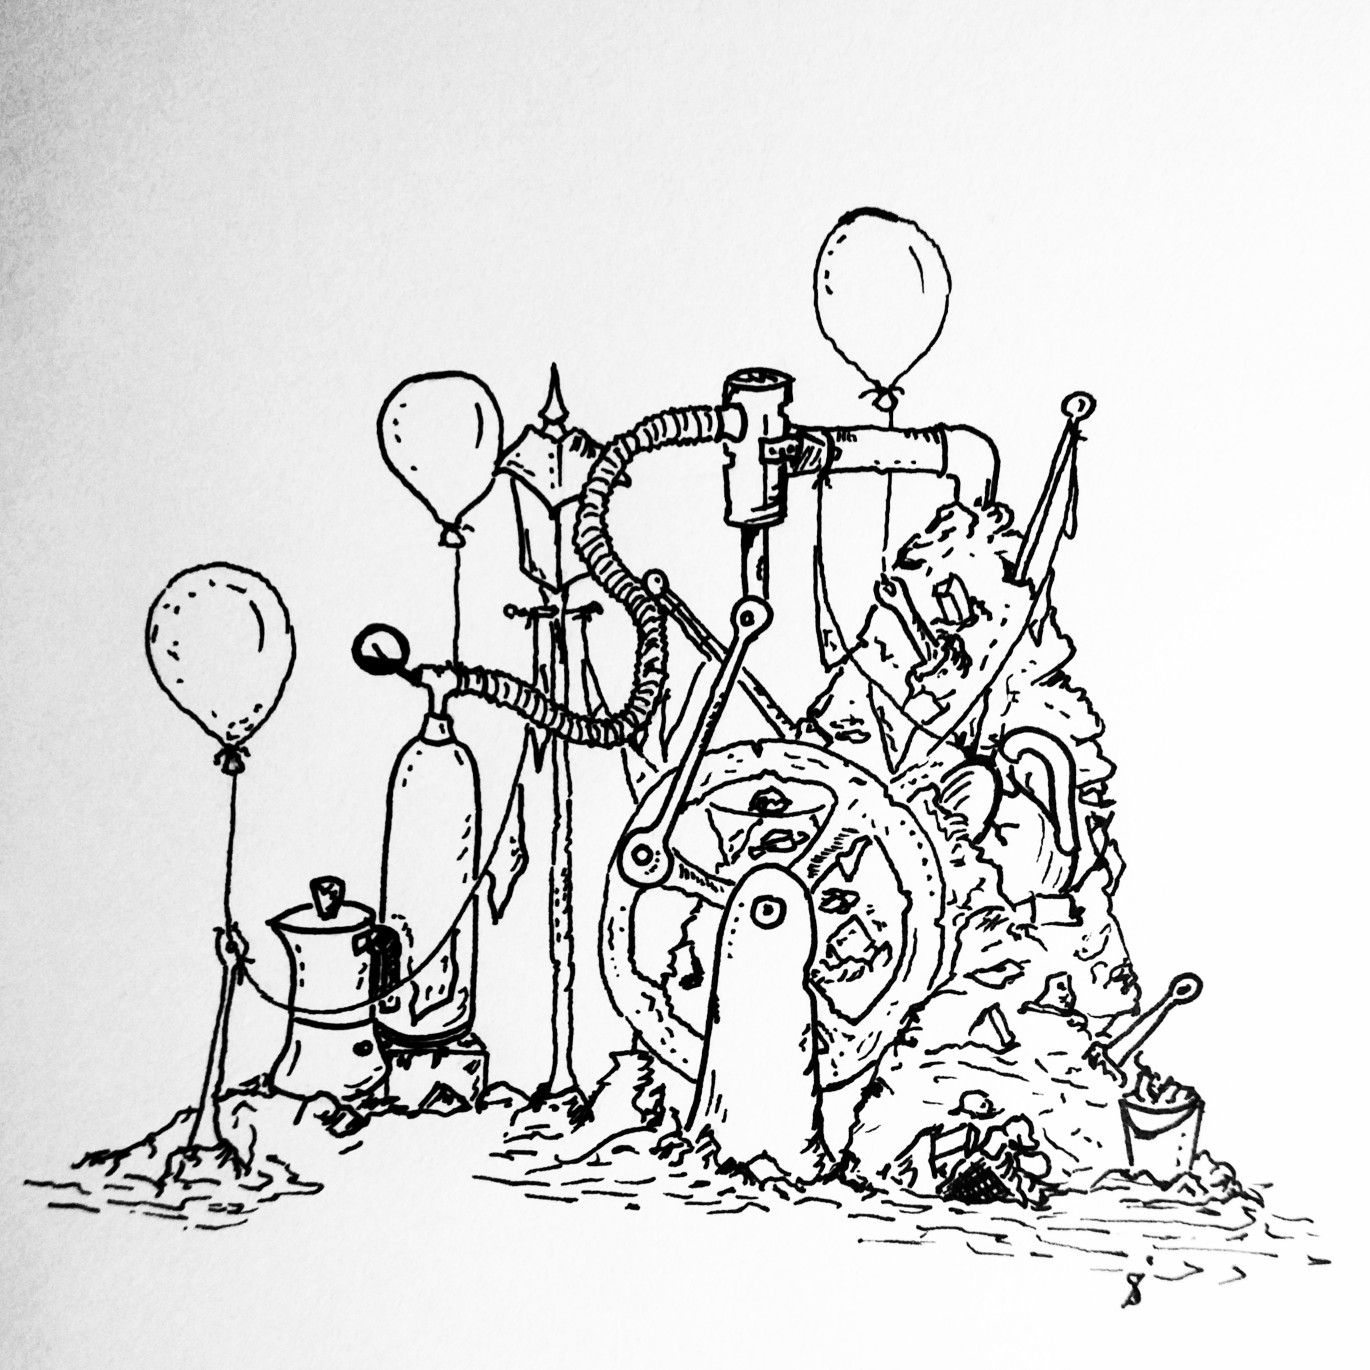 1370x1370 30 Drawing Days Challenge. Day2. Pumping Station On A Pile. 30